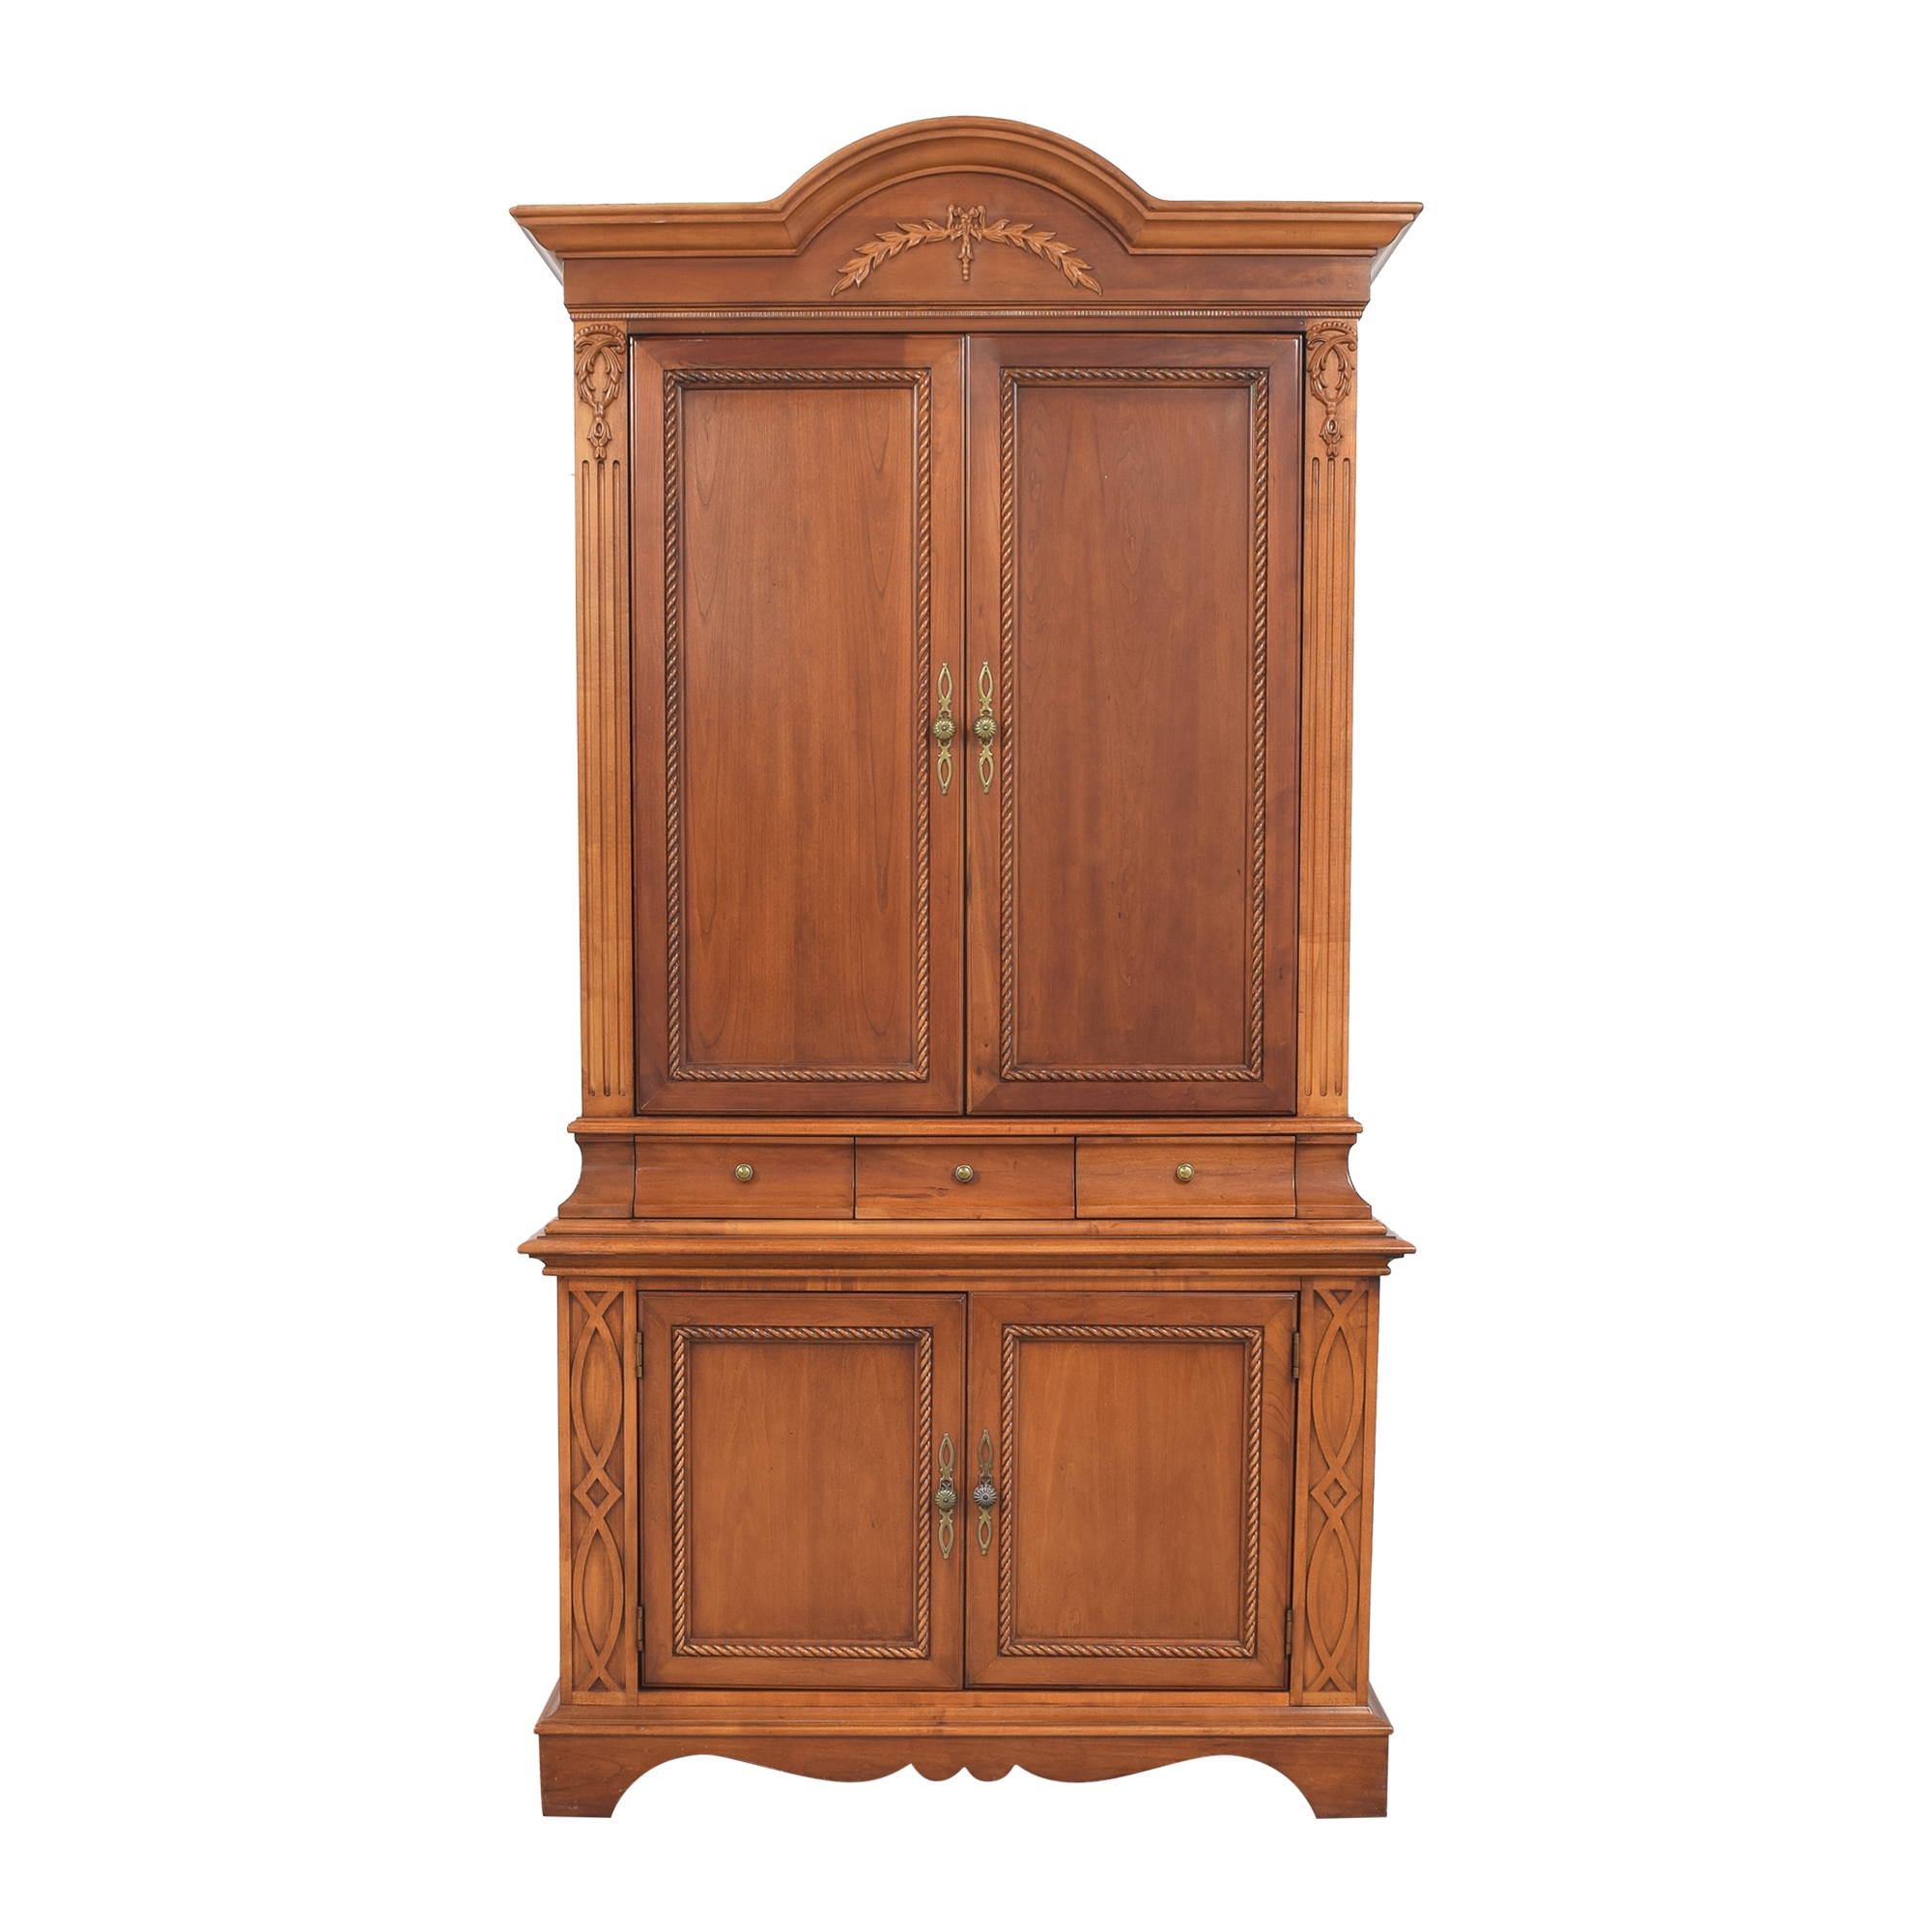 Lexington Furniture Lexington Furniture Holyn Media Armoire Wardrobes & Armoires